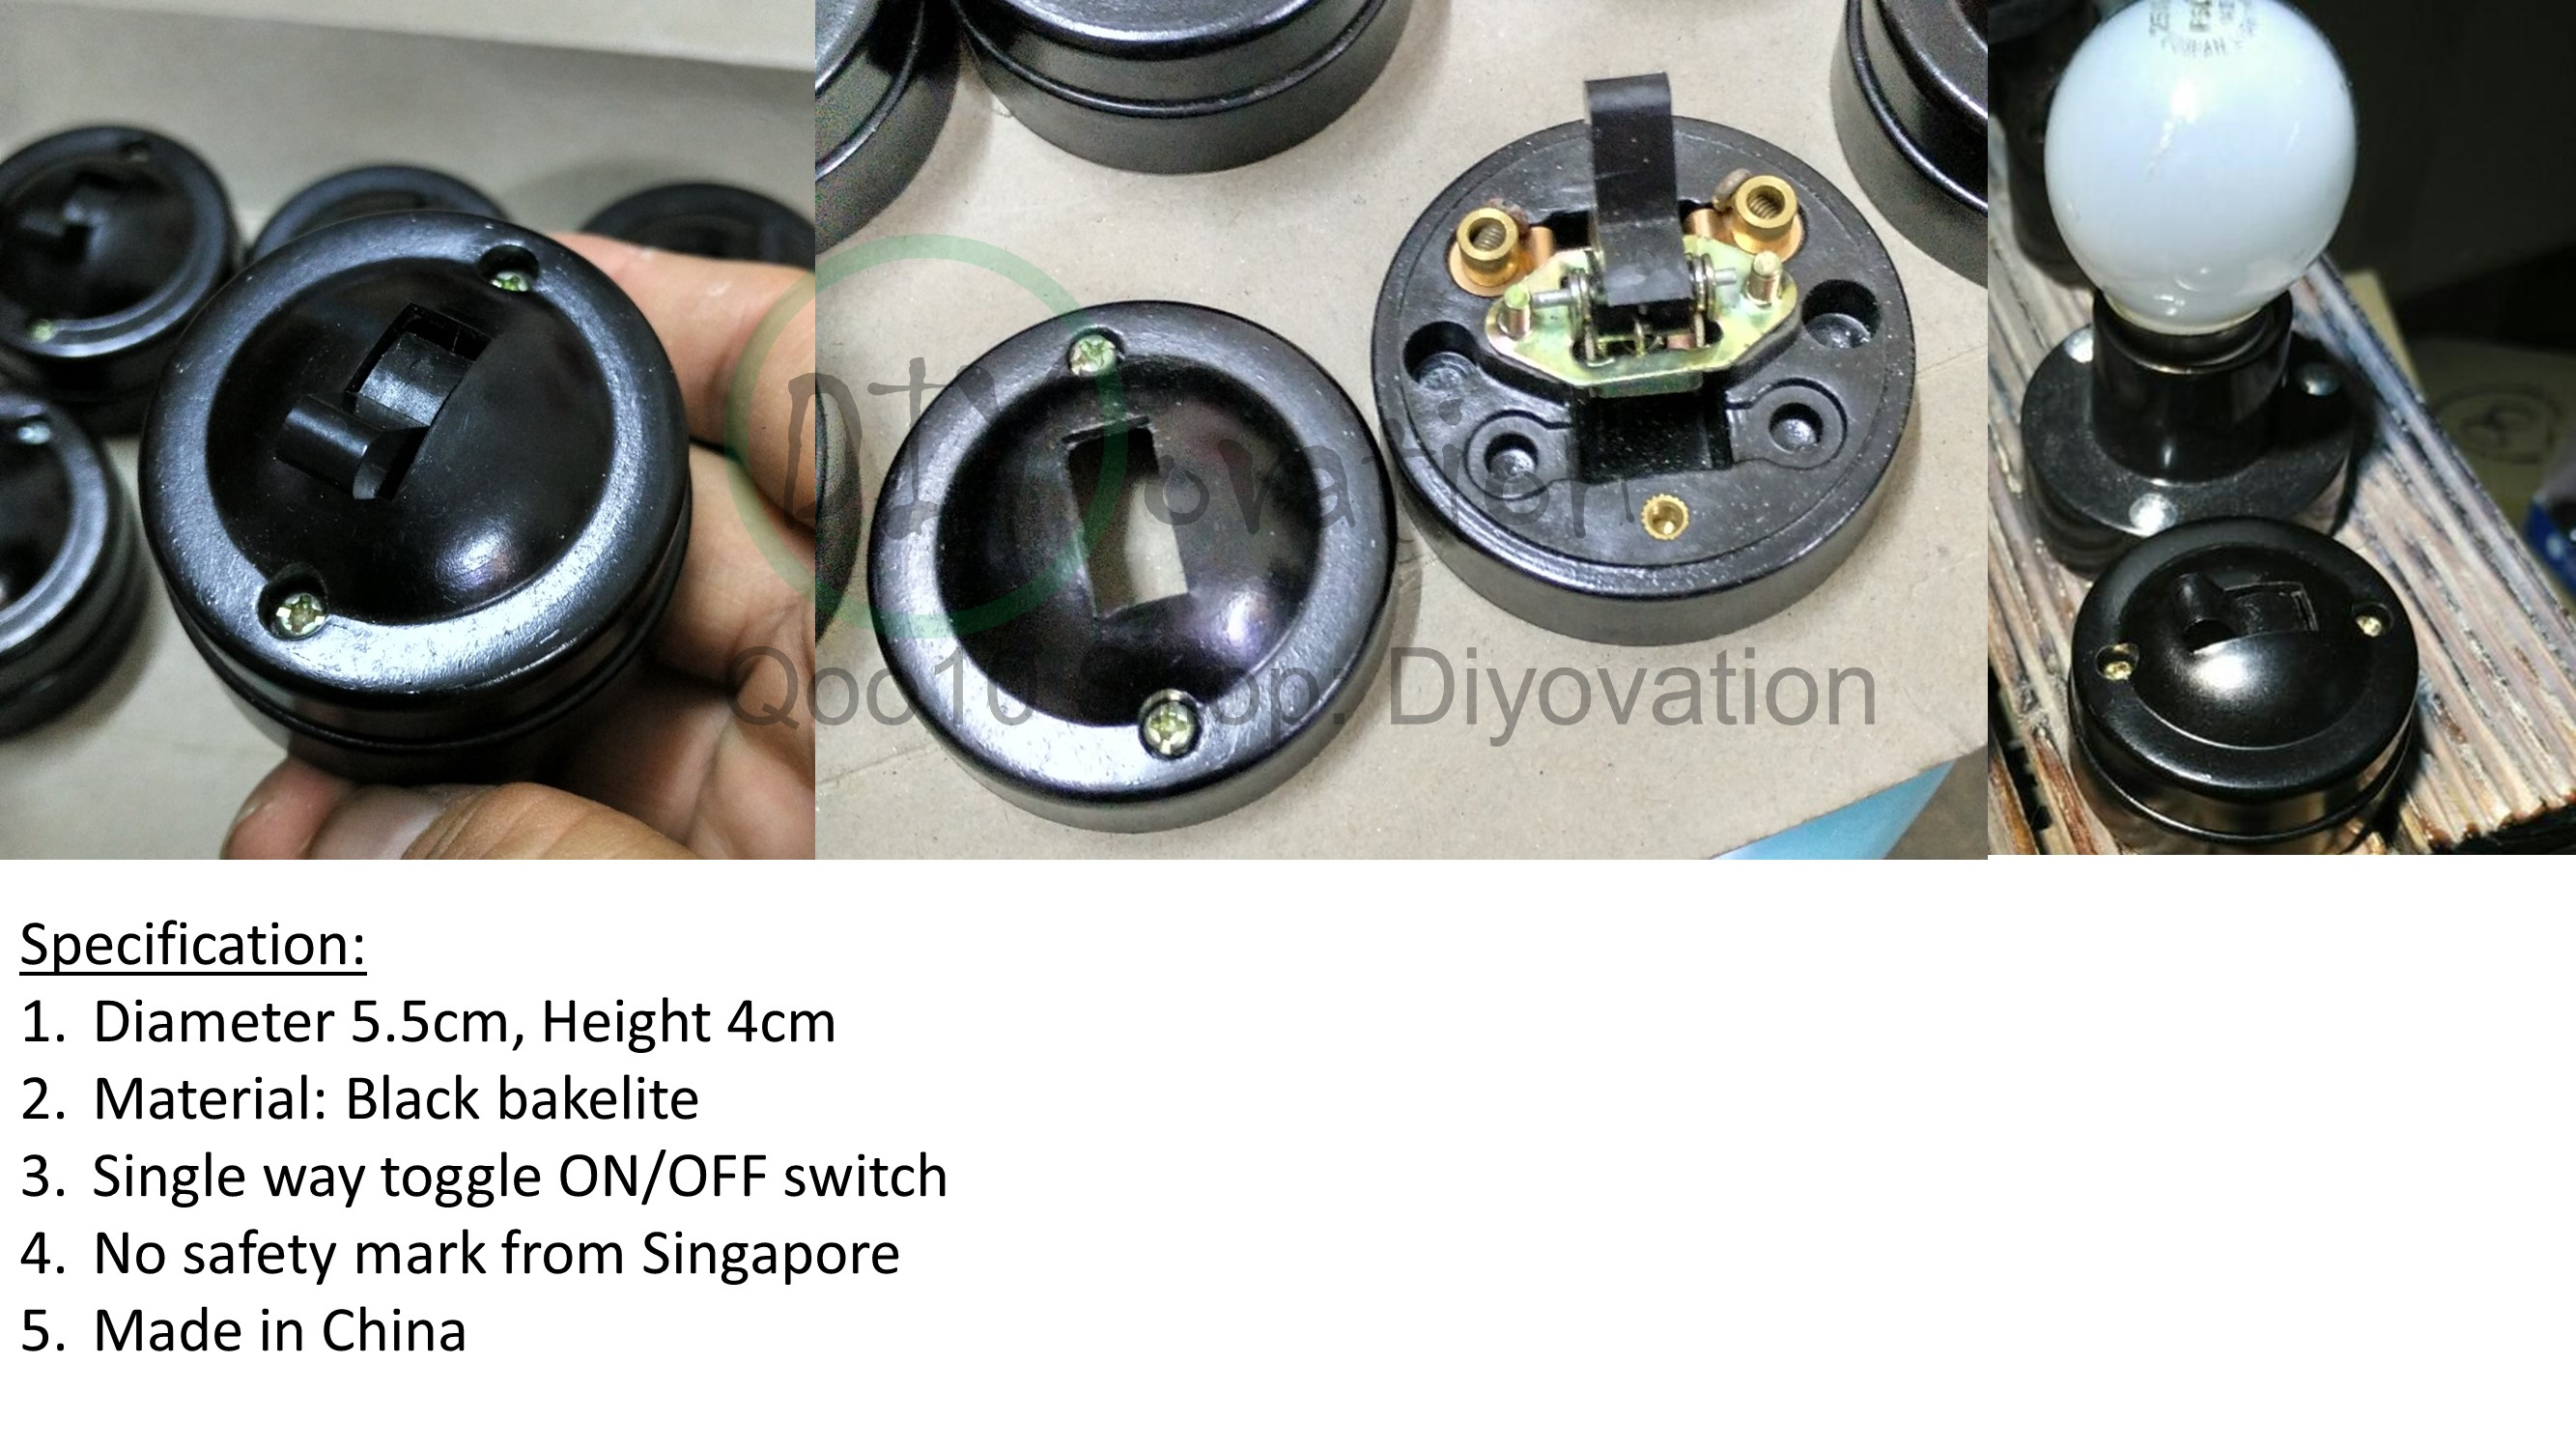 Every Need Want Day 2 Way Switch Singapore These Is Actual Real However Without Safety Mark We Strongly Recommend Use As Decoration Only